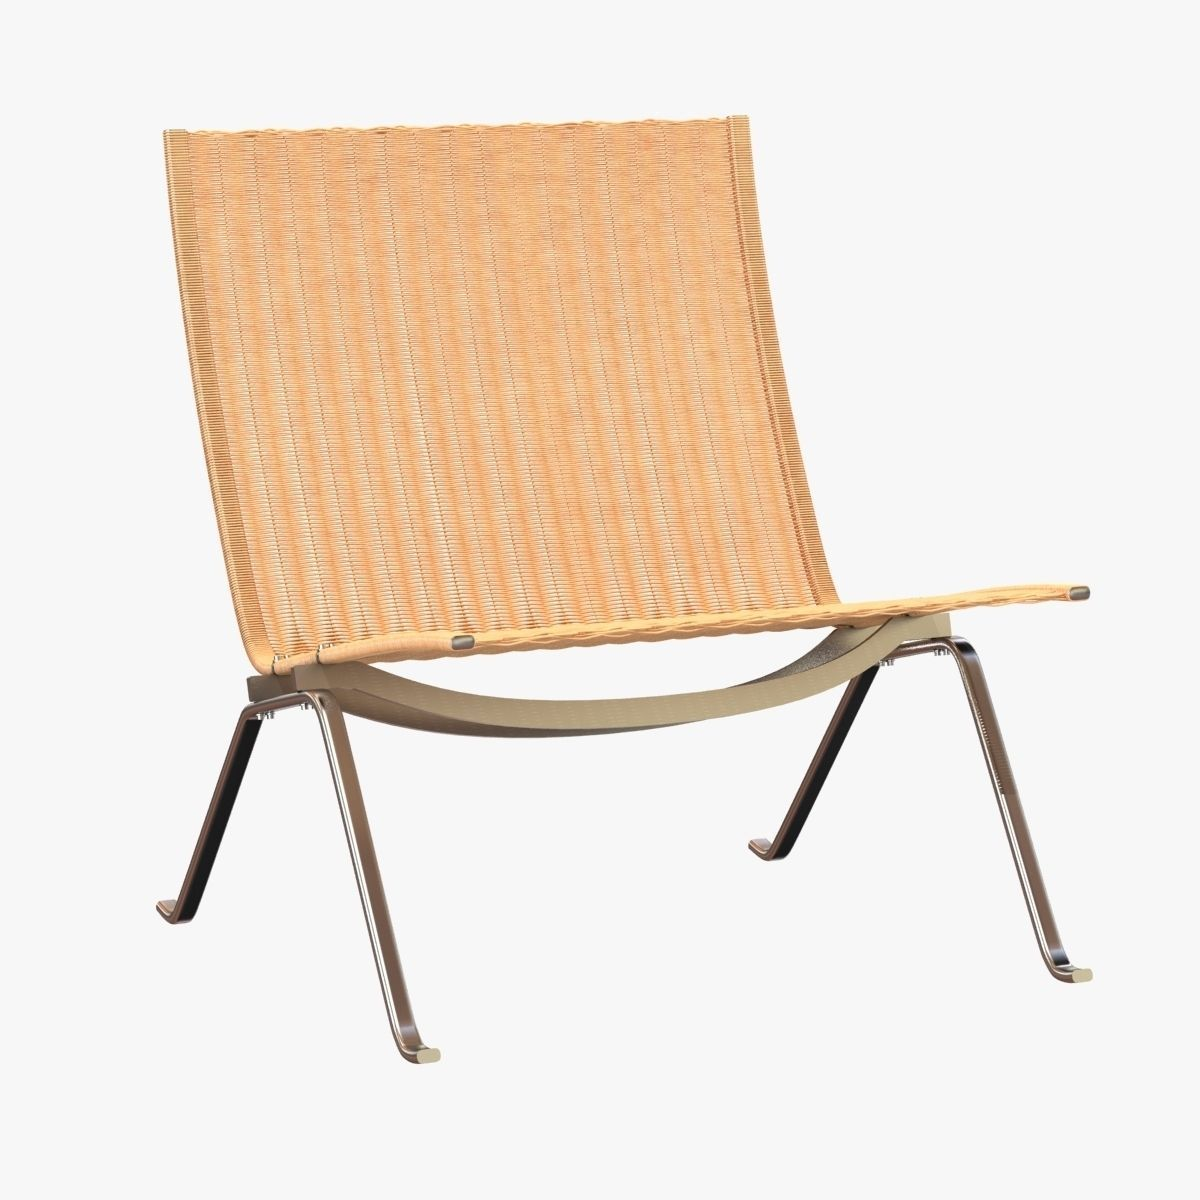 ... Poul Kjaerholm Rattan Lounge Chair 3d Model Max Obj Mtl 3ds Fbx 3 ...